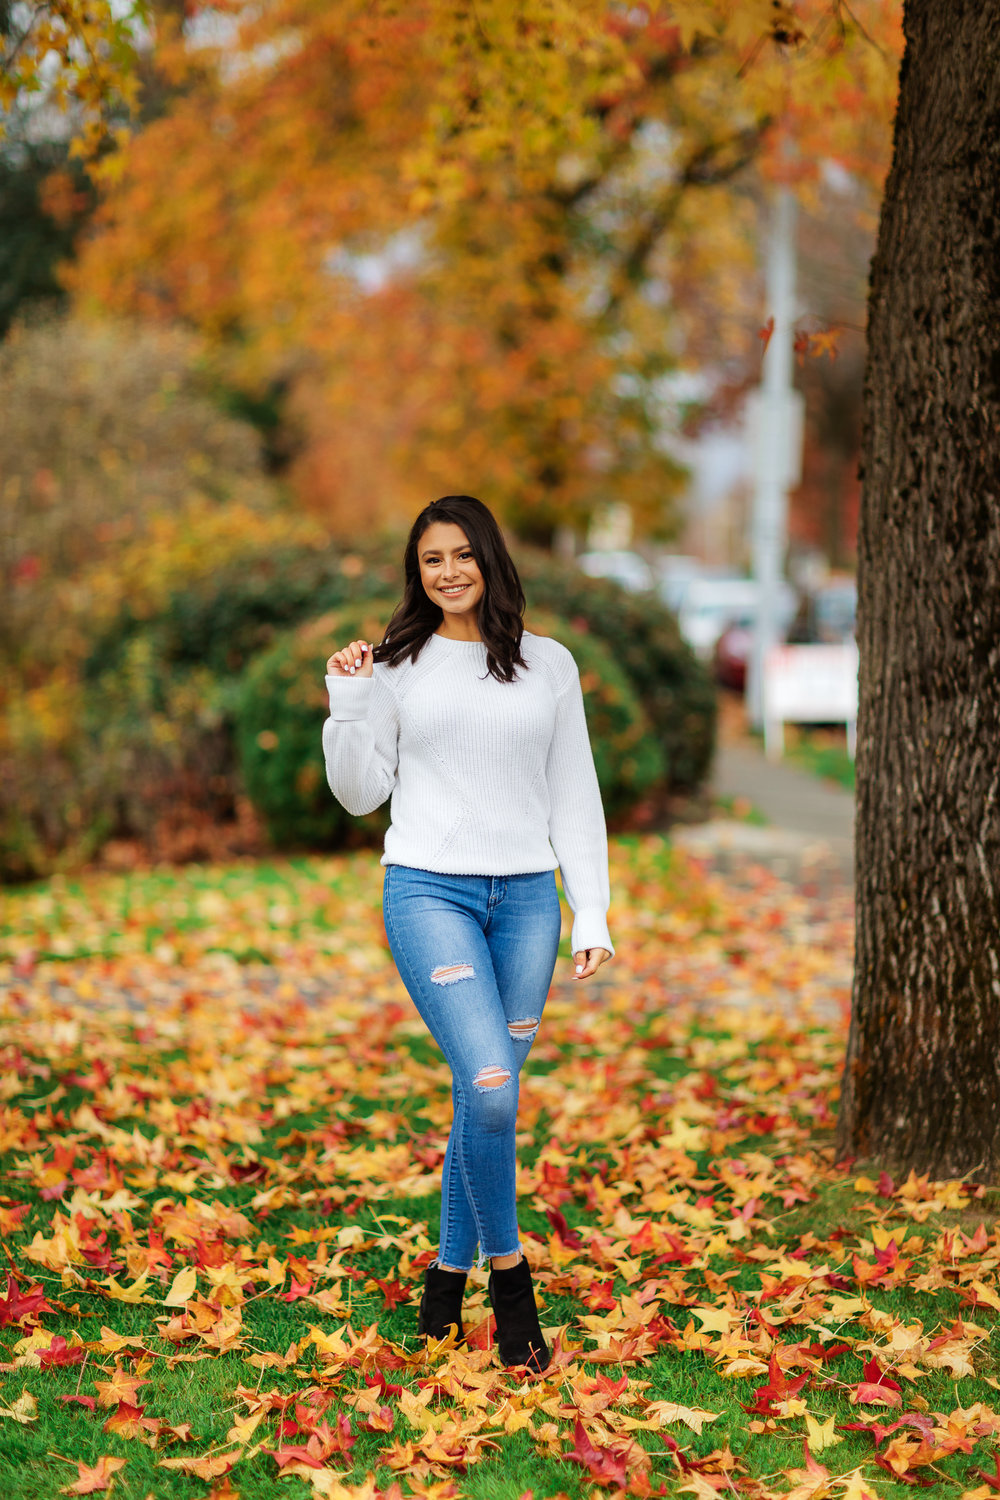 ariella-noelle-photography-seattle-area-senior-portraits-57.jpg